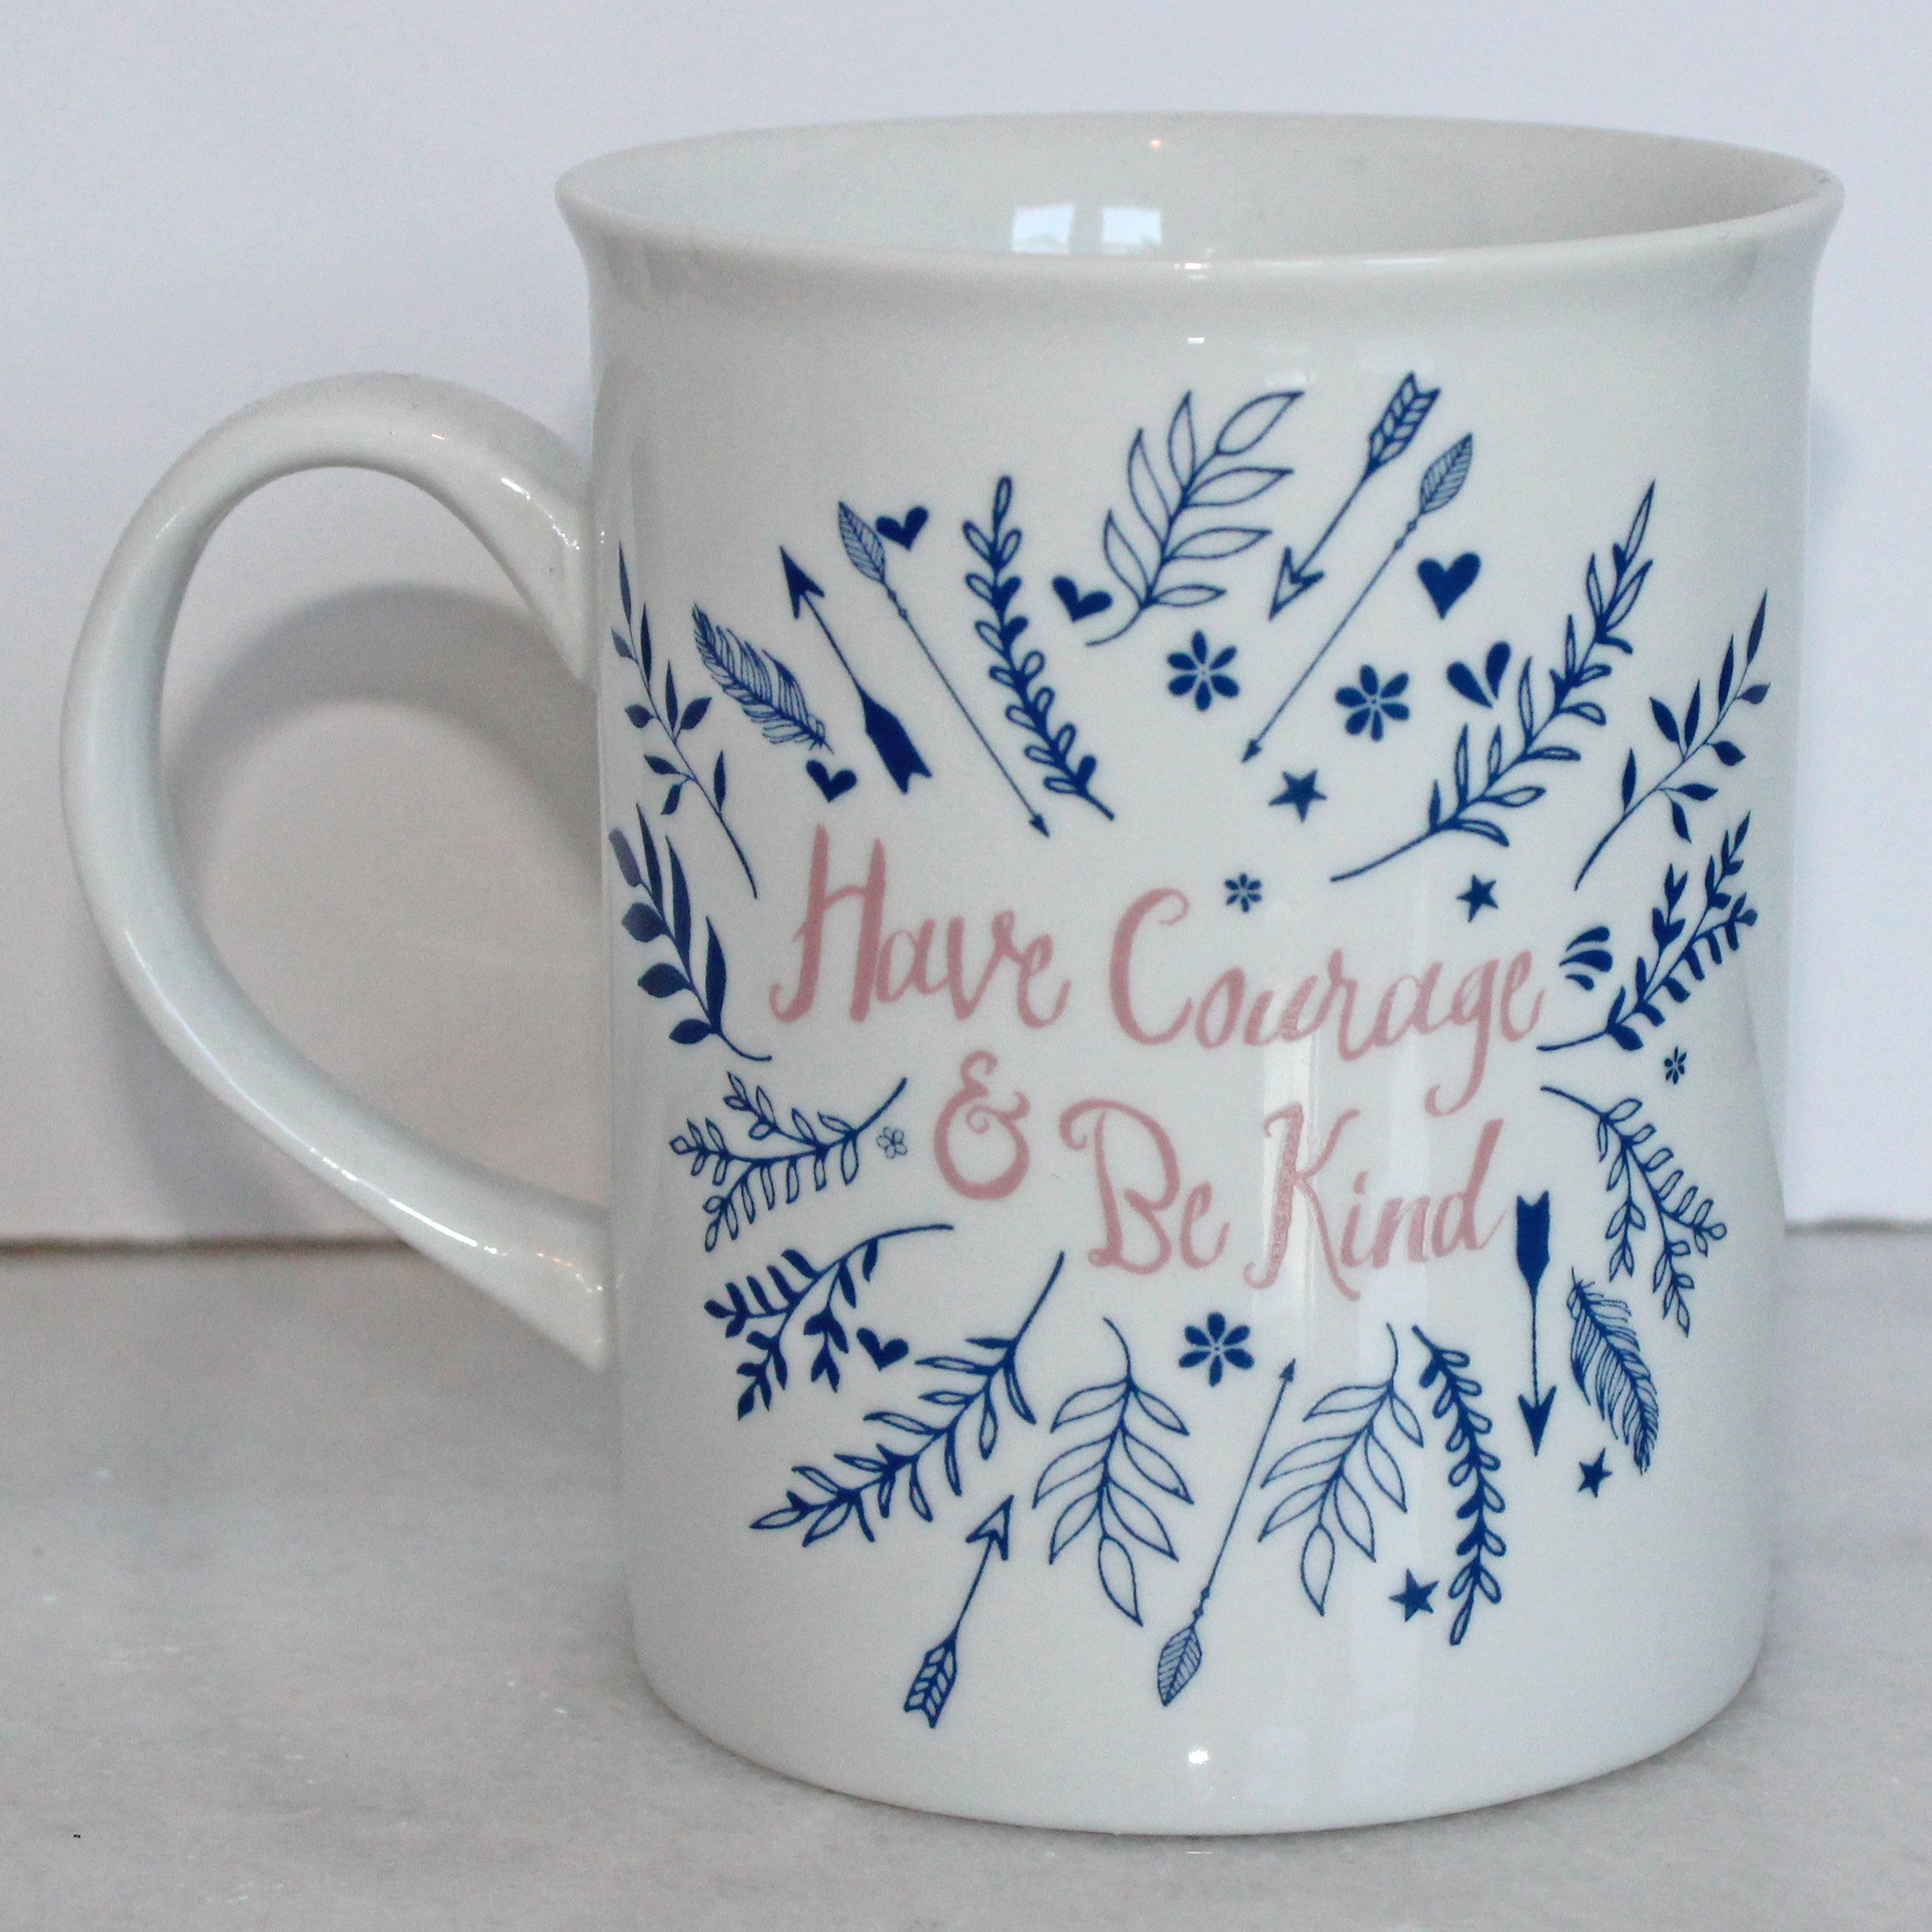 Mug - Have Courage & Be Kind